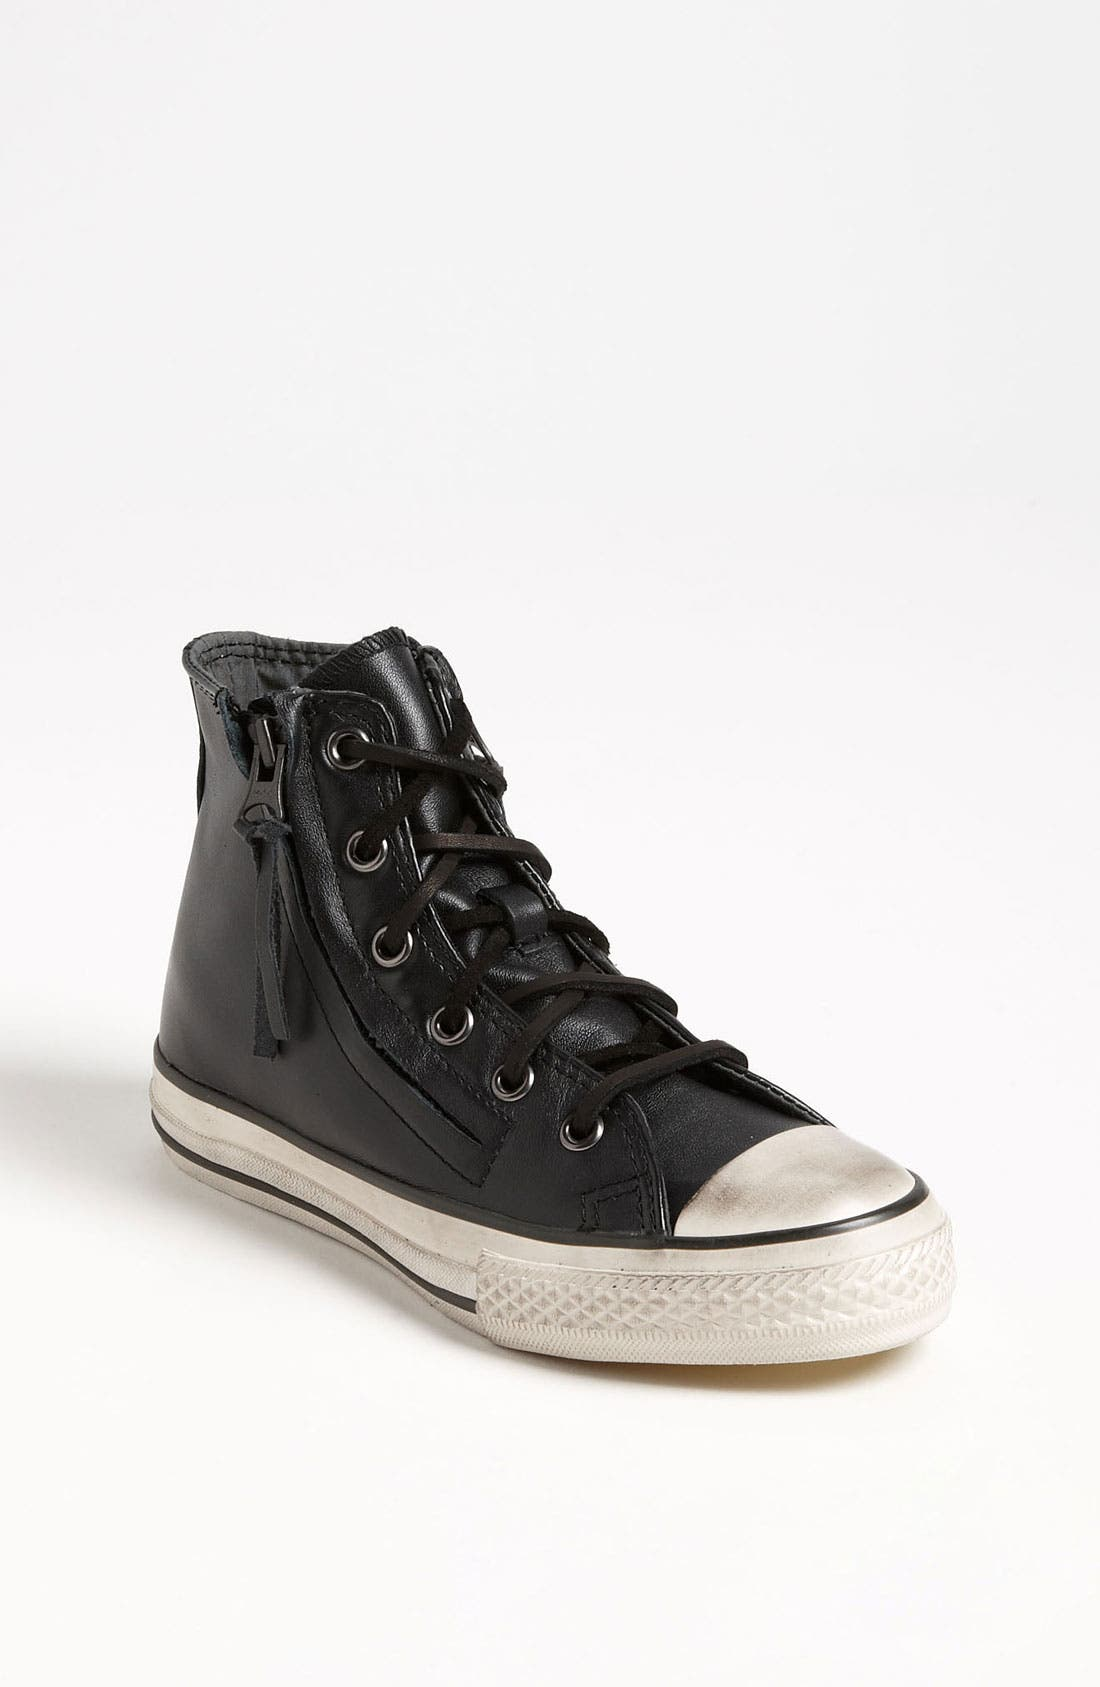 Main Image - Converse by John Varvatos 'Double Zip' High Top Sneaker (Toddler, Little Kid & Big Kid)